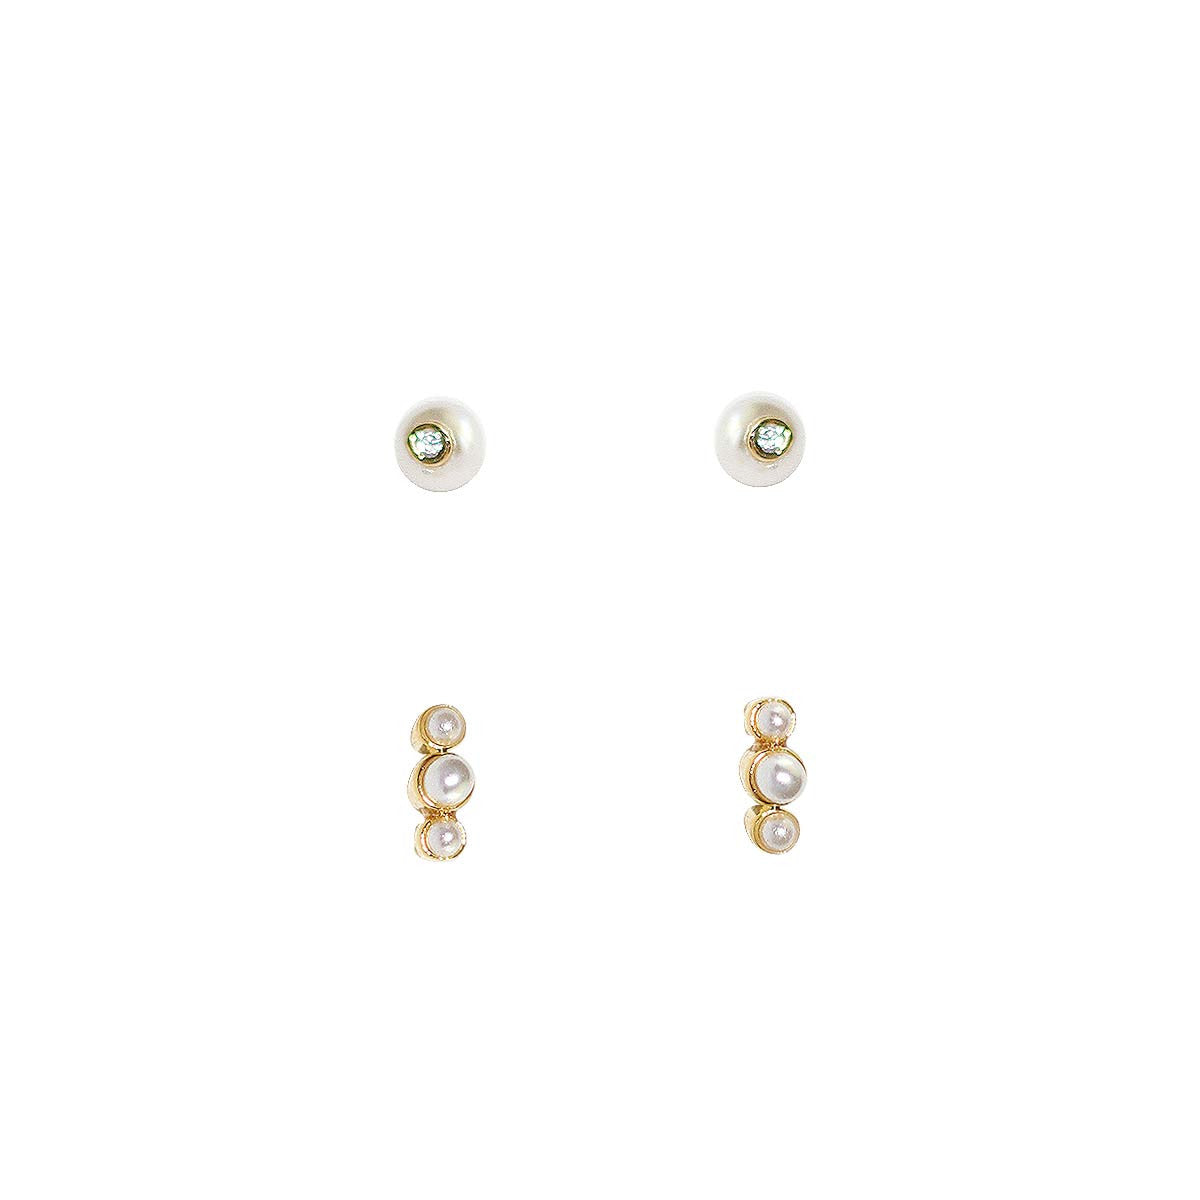 MINI PEARL SET OF 2 EARRINGS